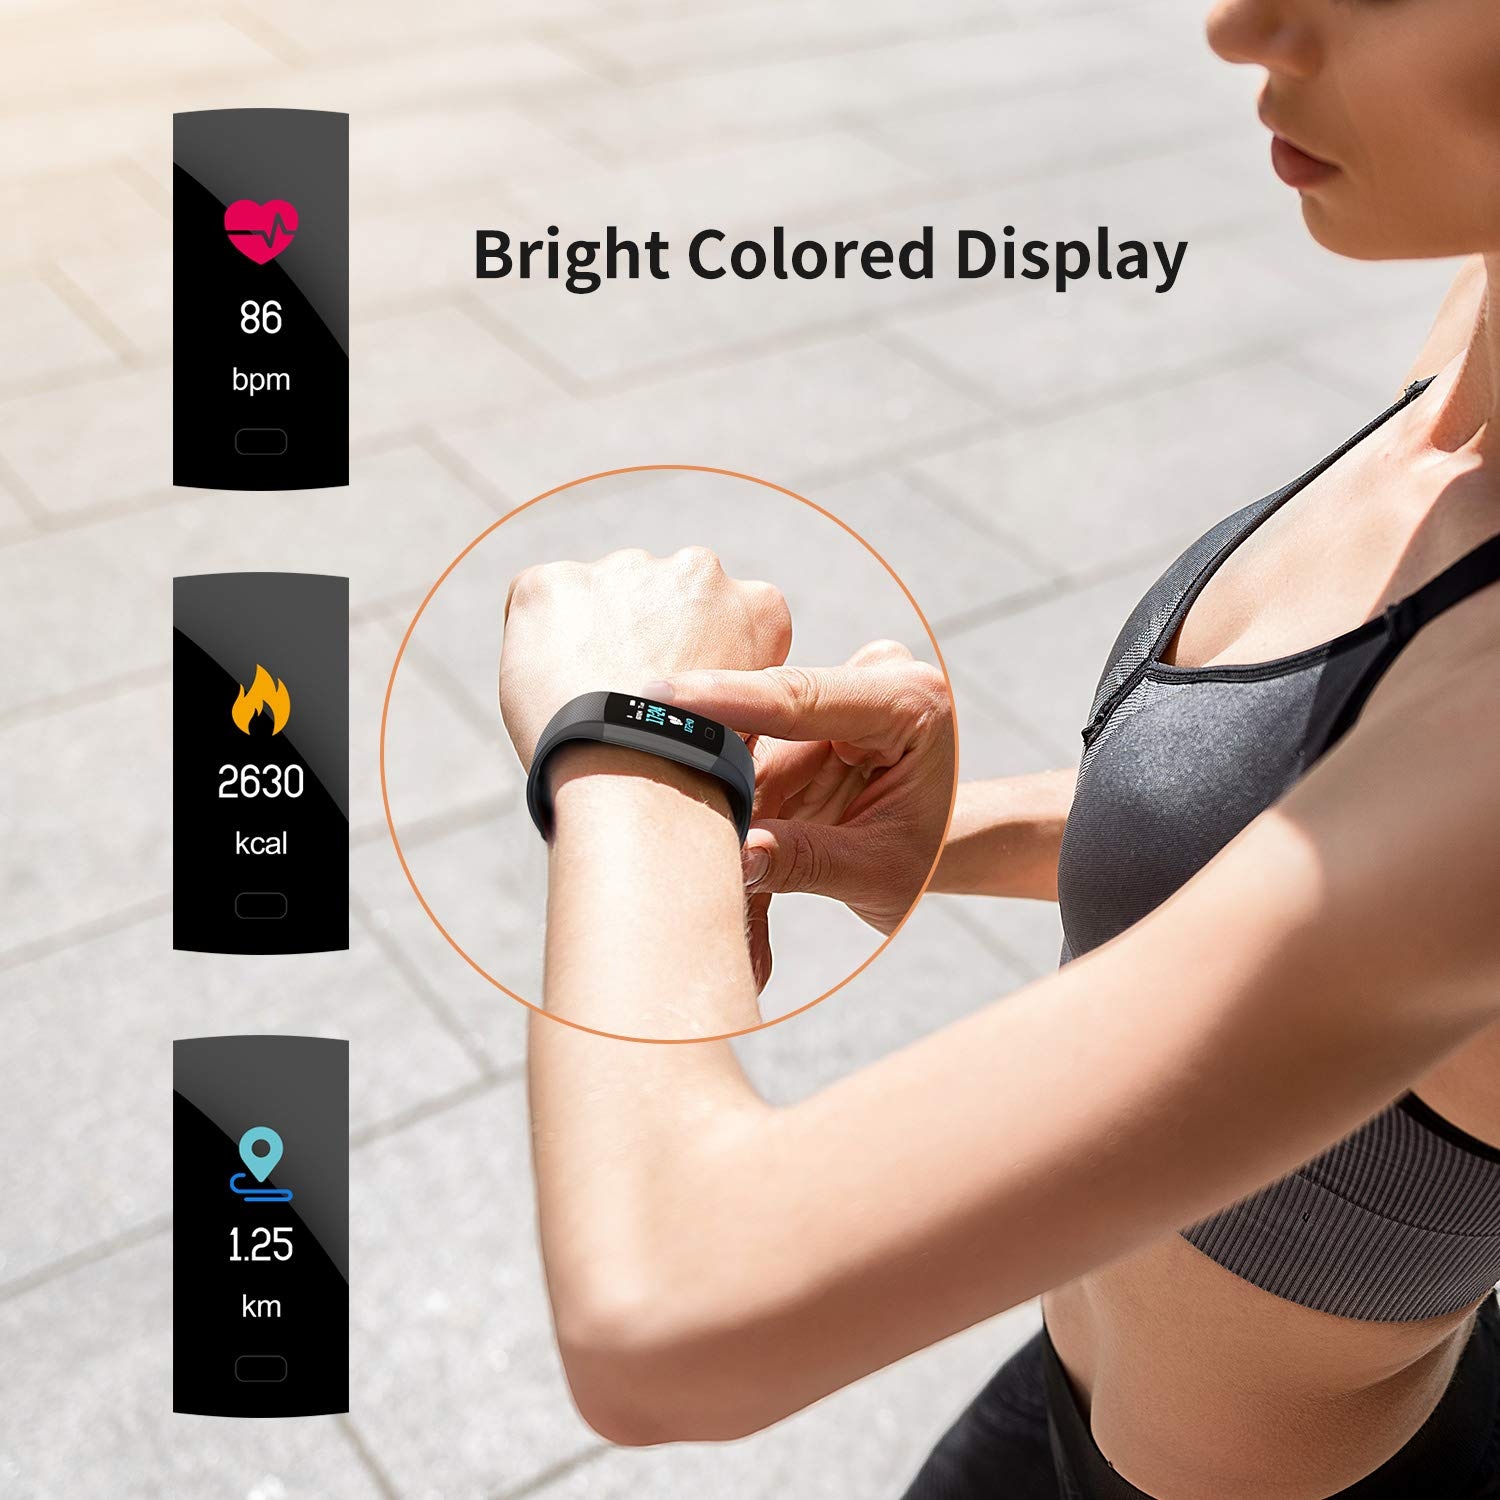 Fitness Tracker HR, Y1 Activity Tracker Watch with Heart Rate Monitor, Pedometer IP67 Waterproof Sleep Monitor Step Counter for Android & iPhone (Midnight Black) by Akuti (Image #6)